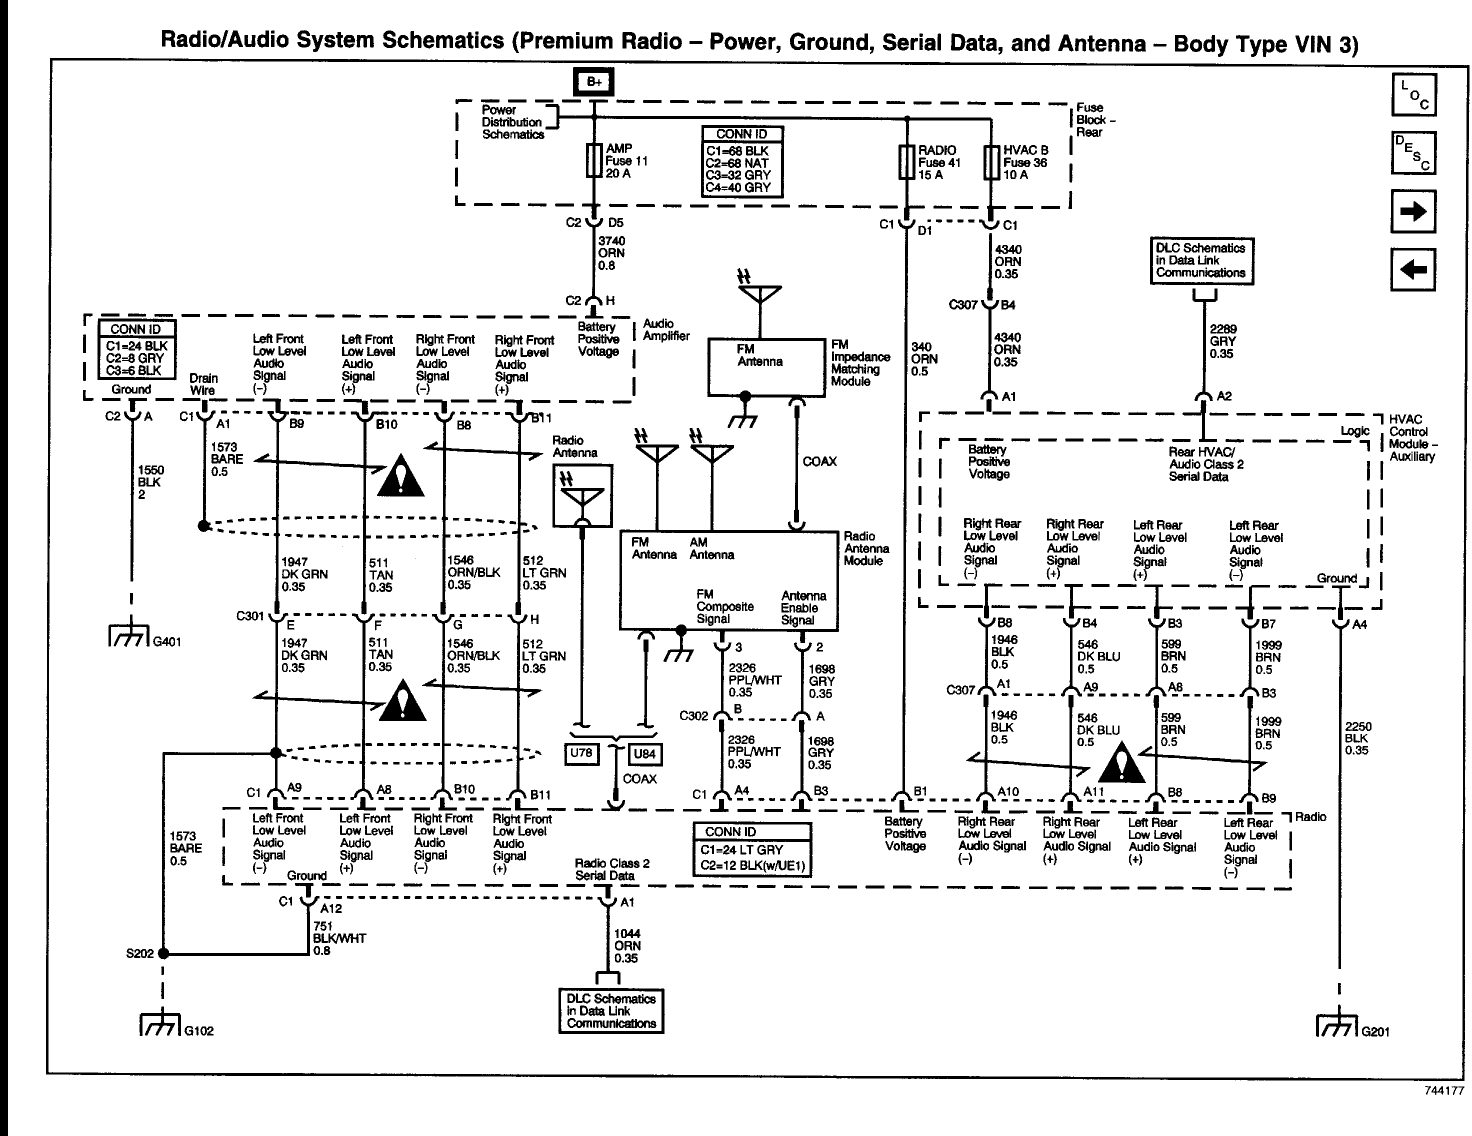 Gmc Sierra Radio Wiring Diagram Gmc Wiring Diagram Electrical Work Wiring Diagram U Rh Wiringdiagramshop Today Gmc Sierra Radio Wiring Diagram Gmc Sierra Wiring Diagr on 2000 Yukon Wiring Diagrams Pdf